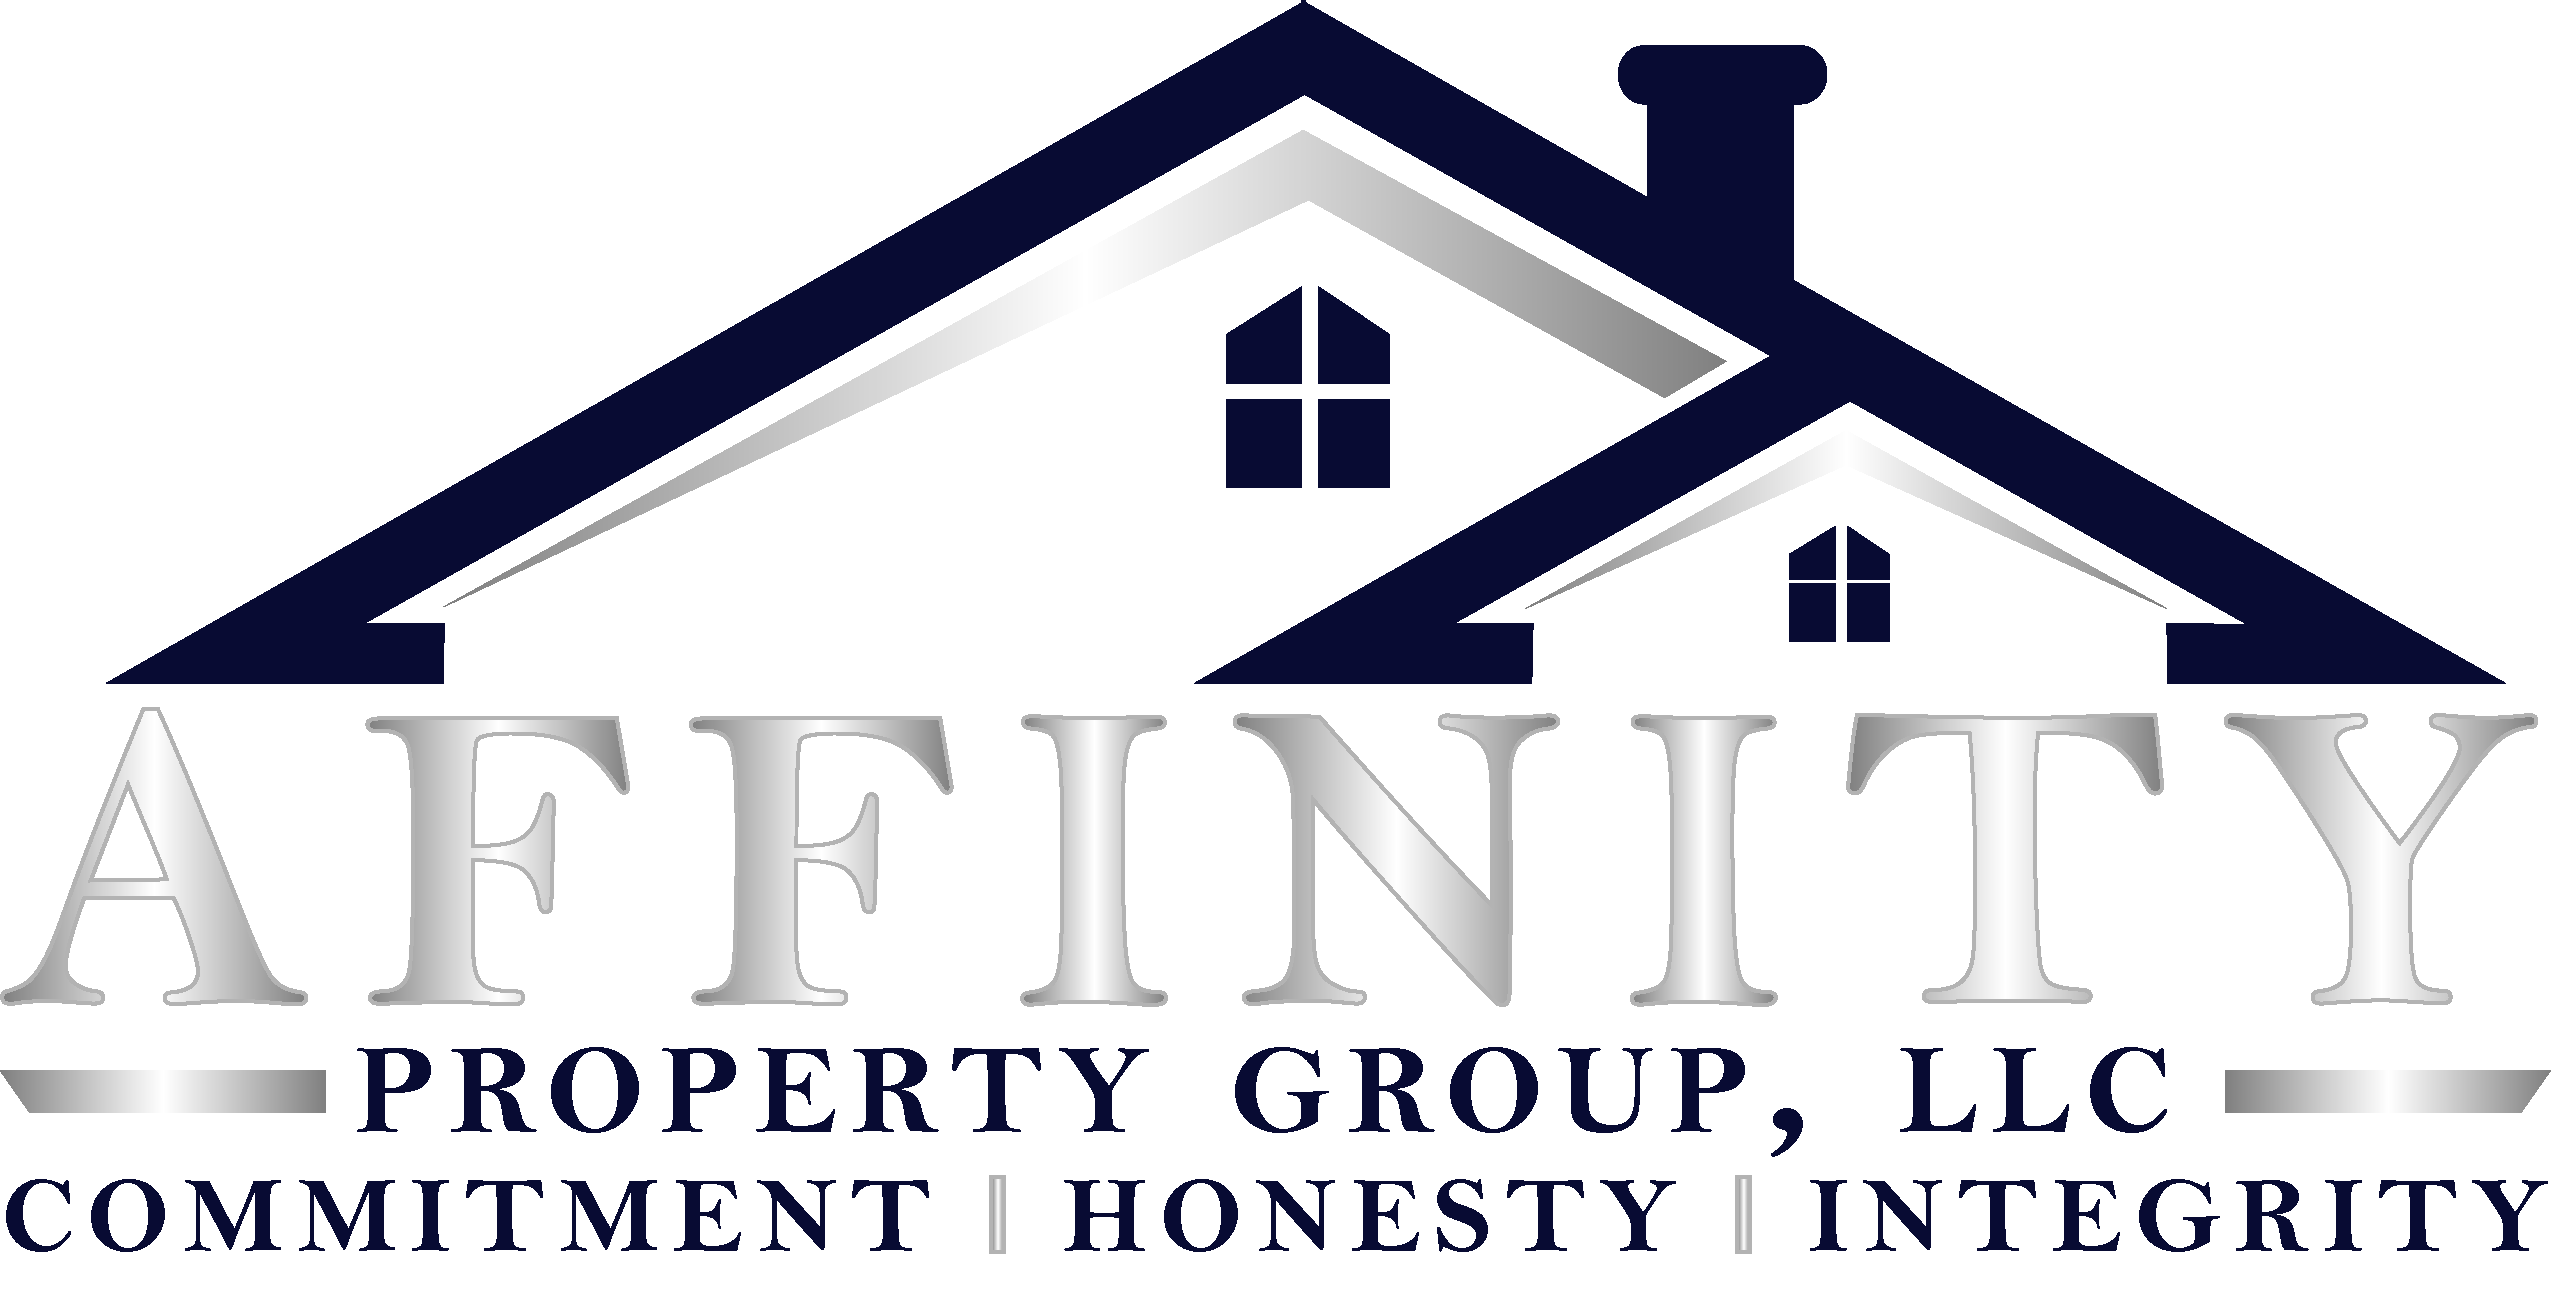 Affinity Property Group, LLC